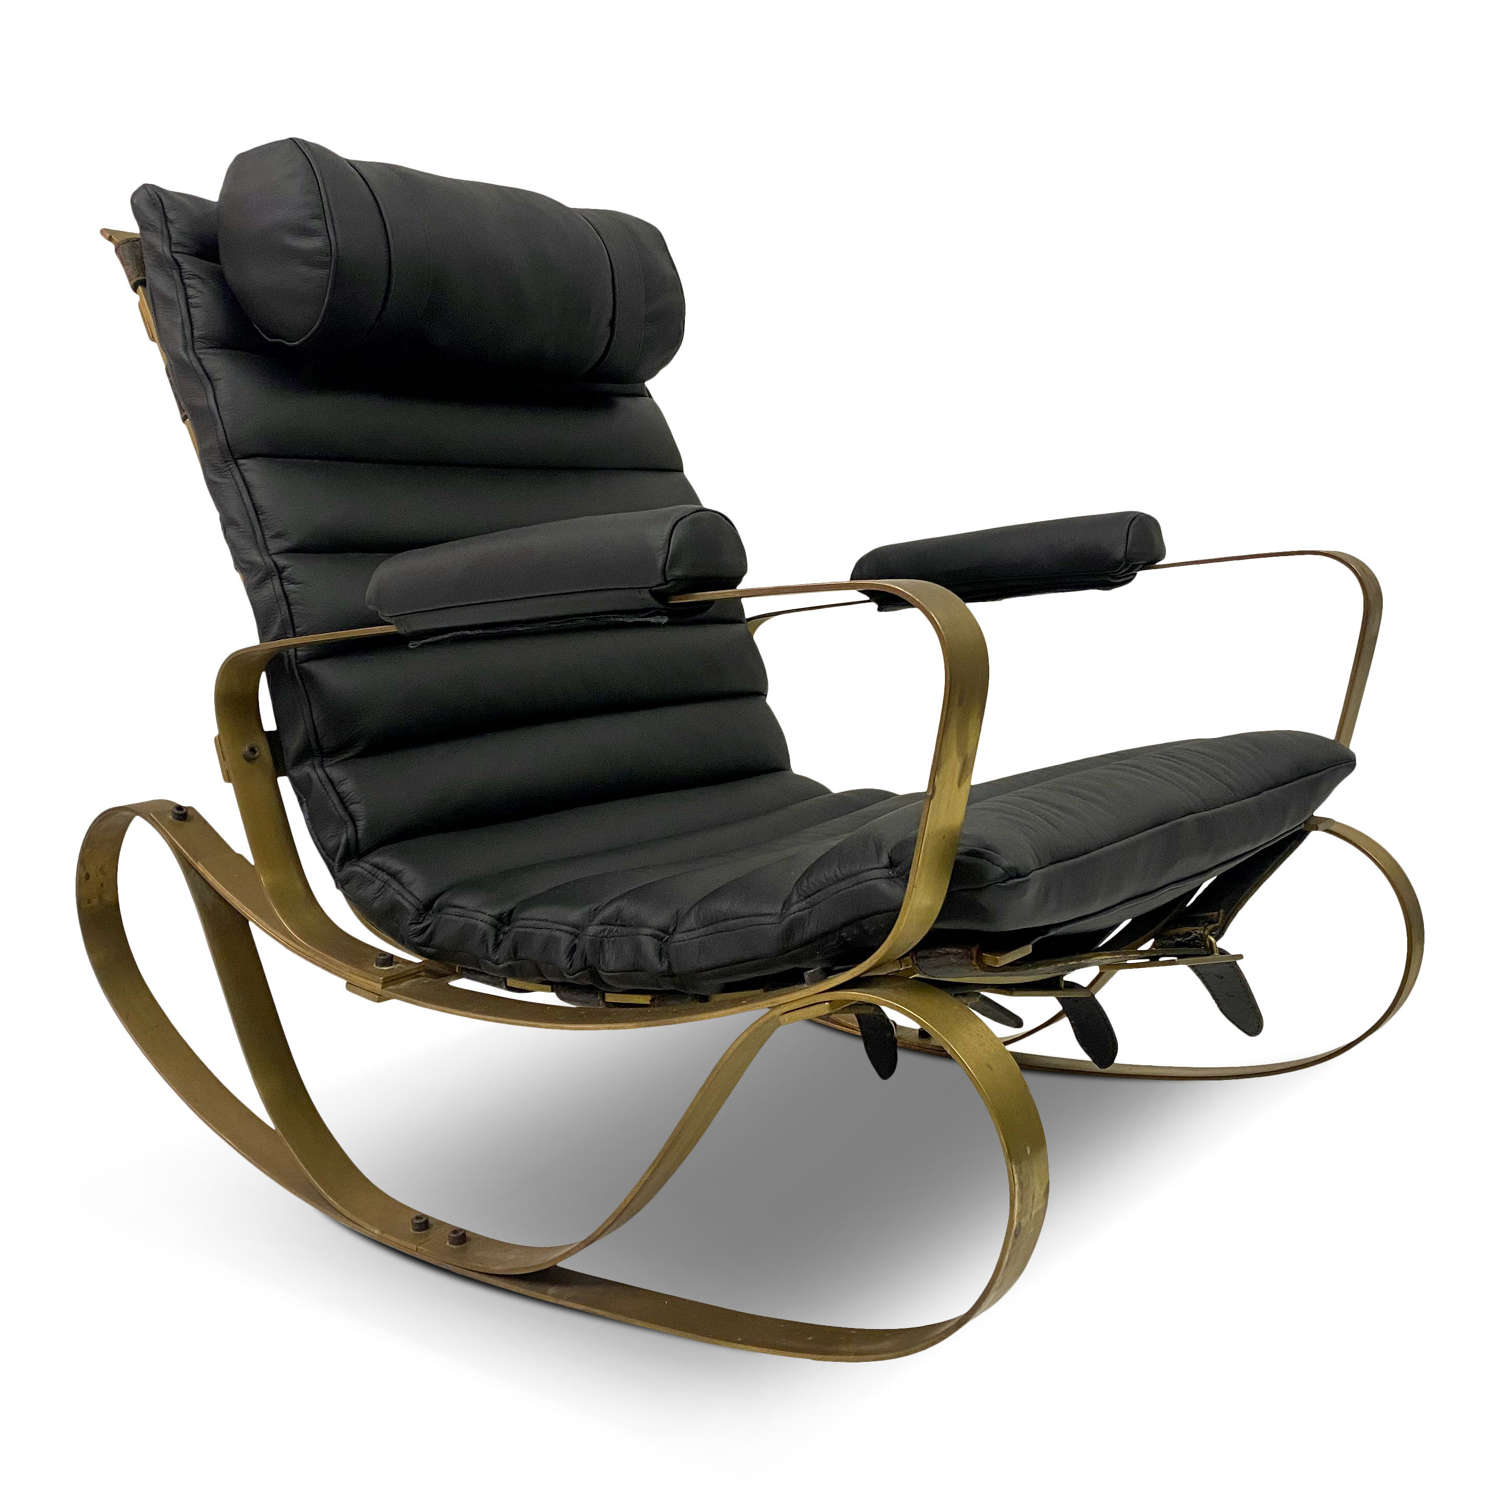 1970s Italian Brass and Black Leather Rocking Chair by Frigerio